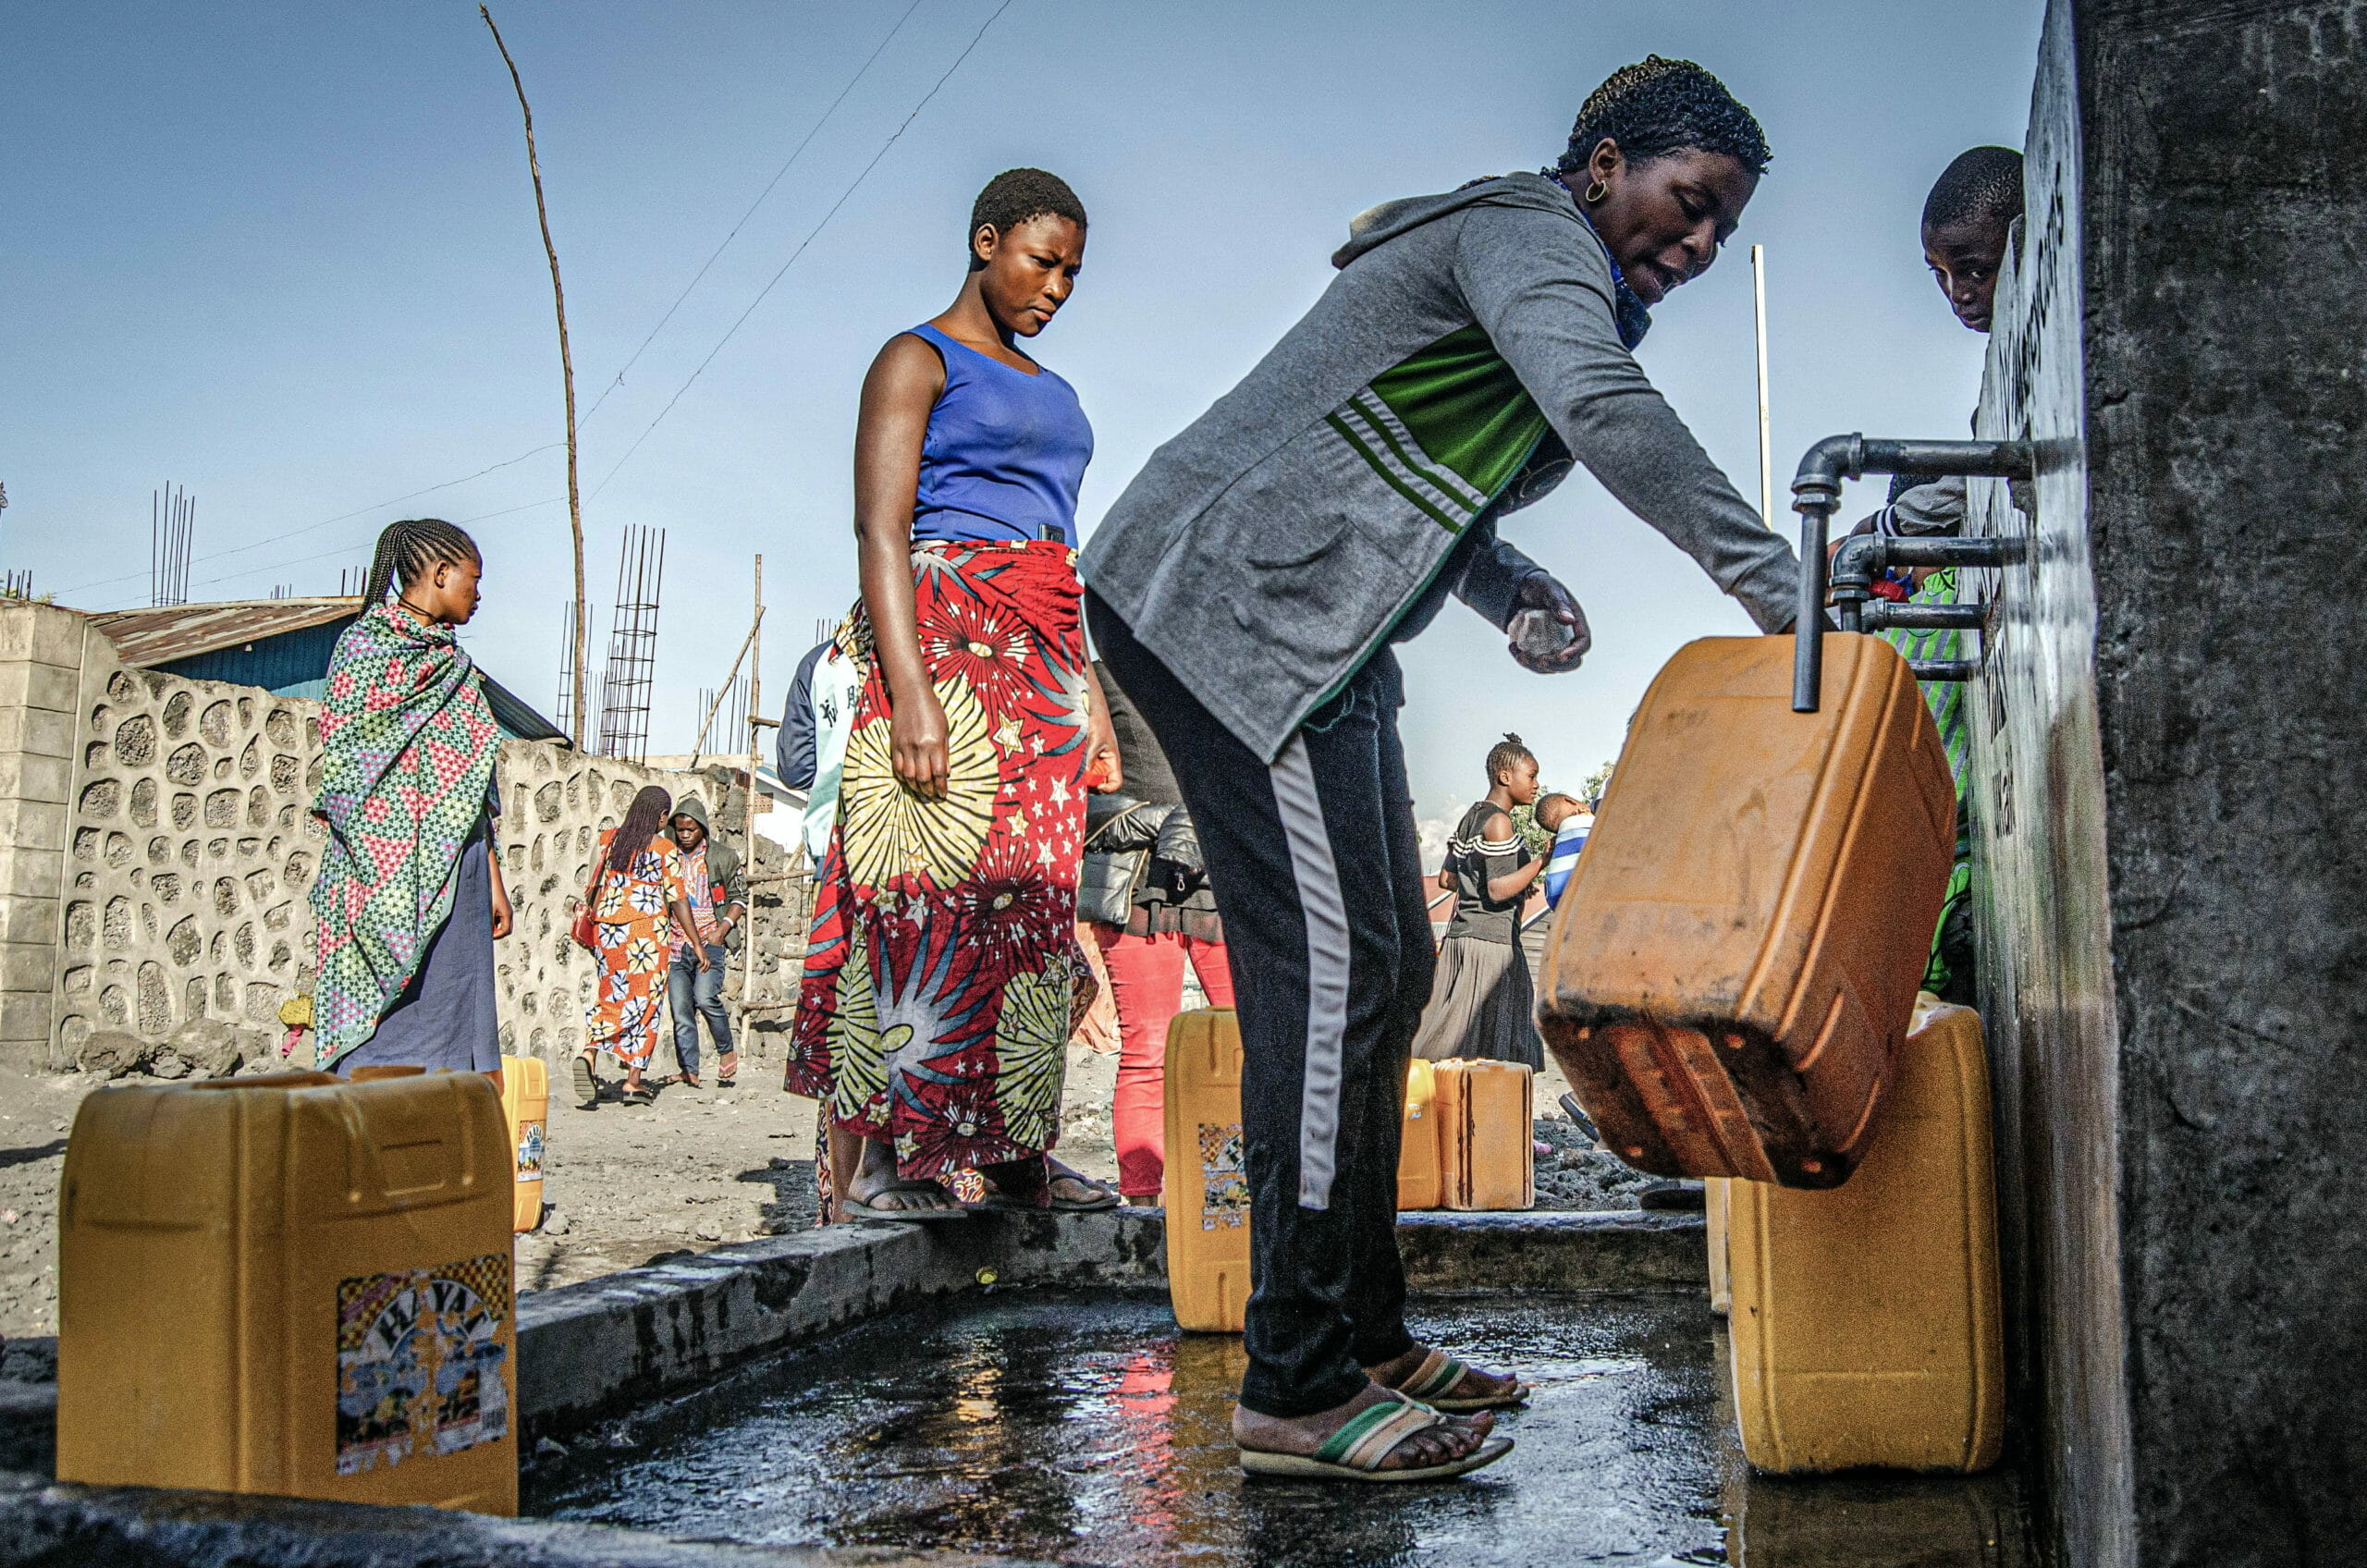 Goma, Democratic Republic of Congo, May 2020. A woman fills a water container in Goma, the capital of eastern Congo's North Kivu Province last month. © Arlette Bashizi for Fondation Carmignac